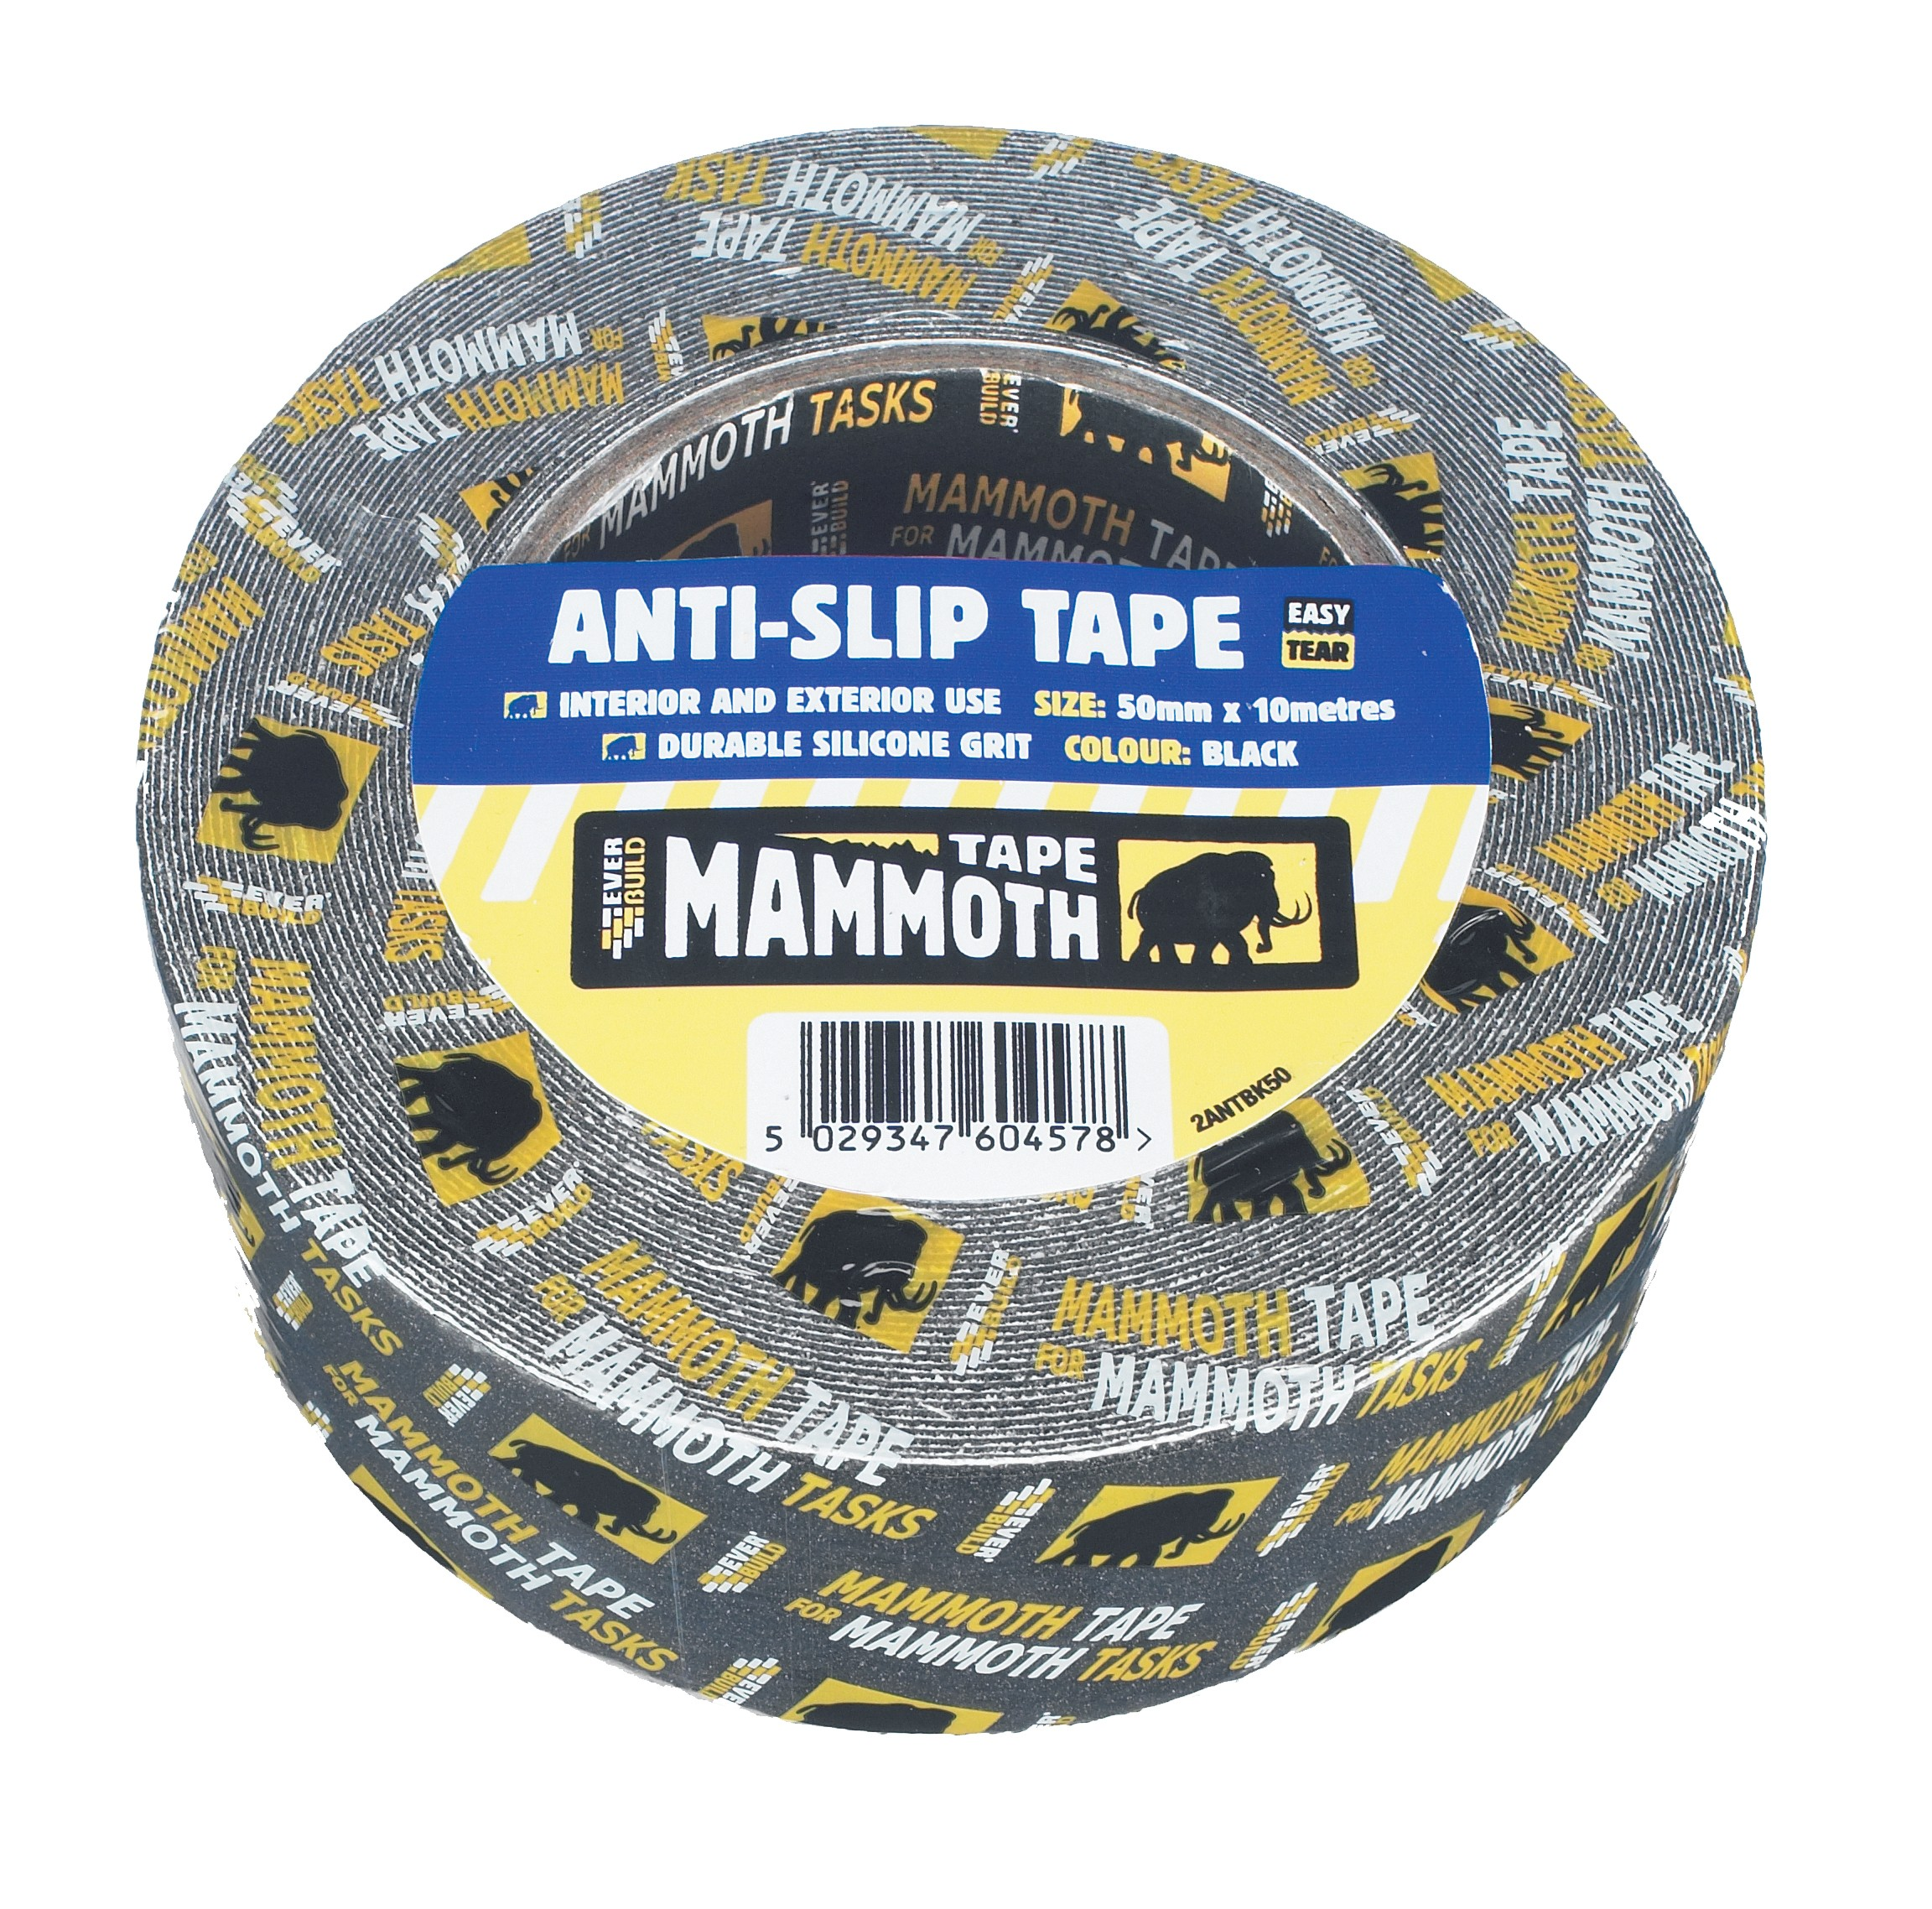 Everbuild Anti-Slip Tape - 5m